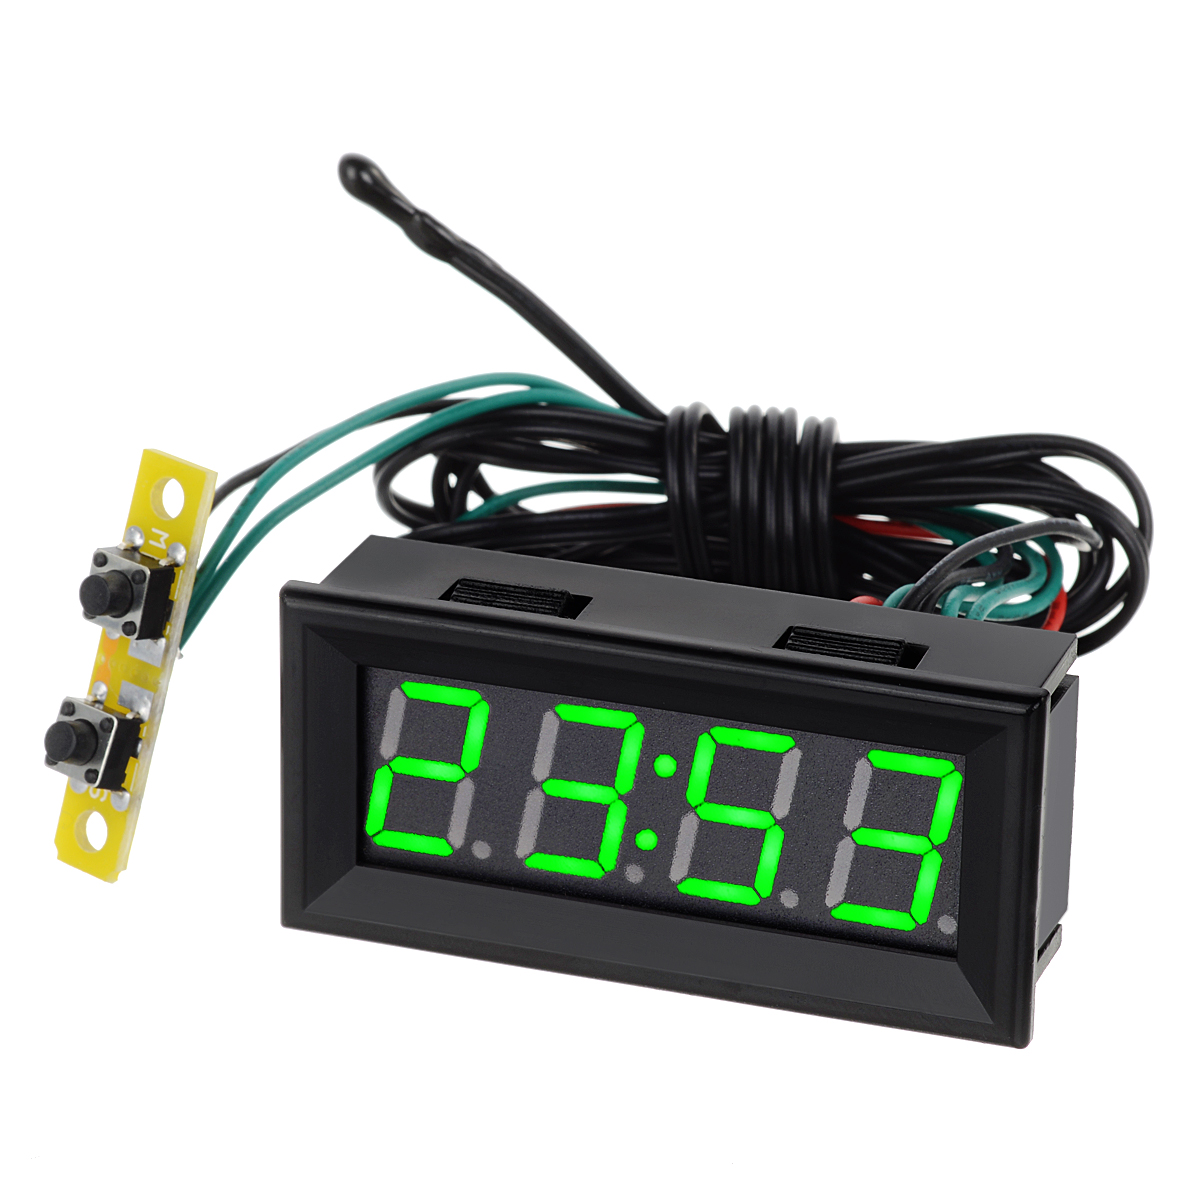 0 56 green led clock voltage temperature digital display